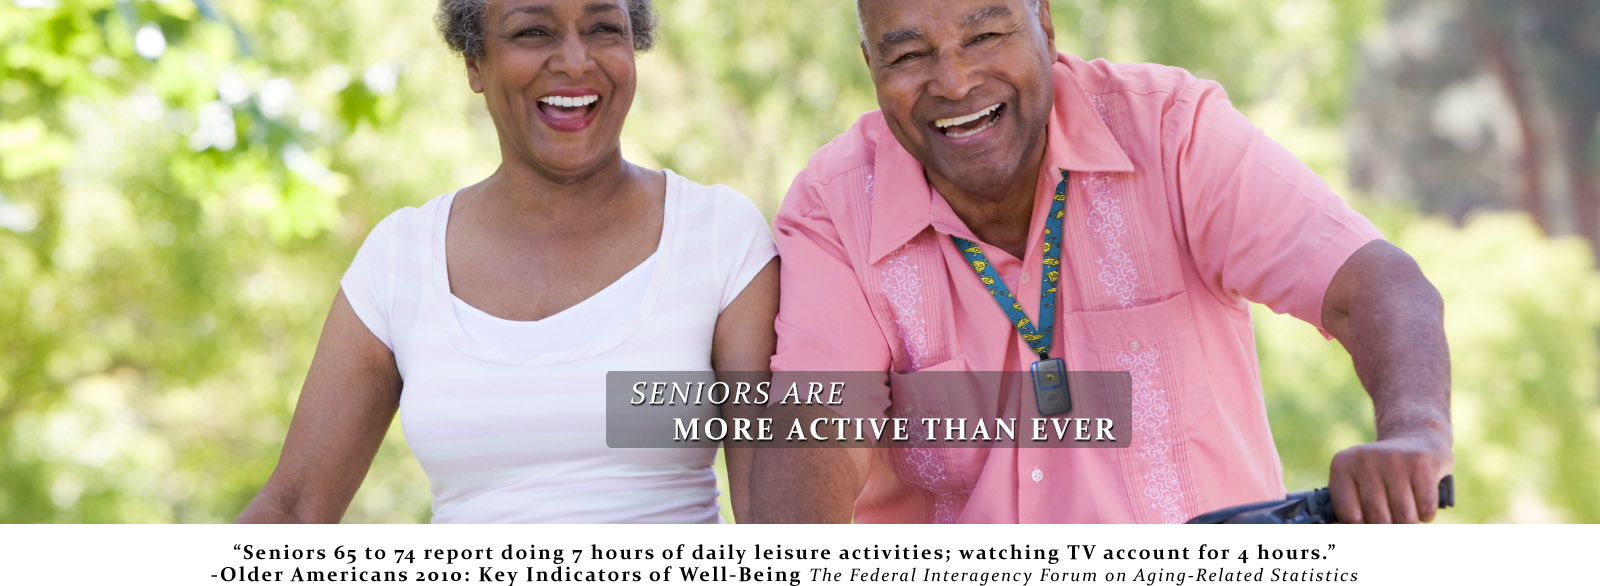 Seniors are more active than ever